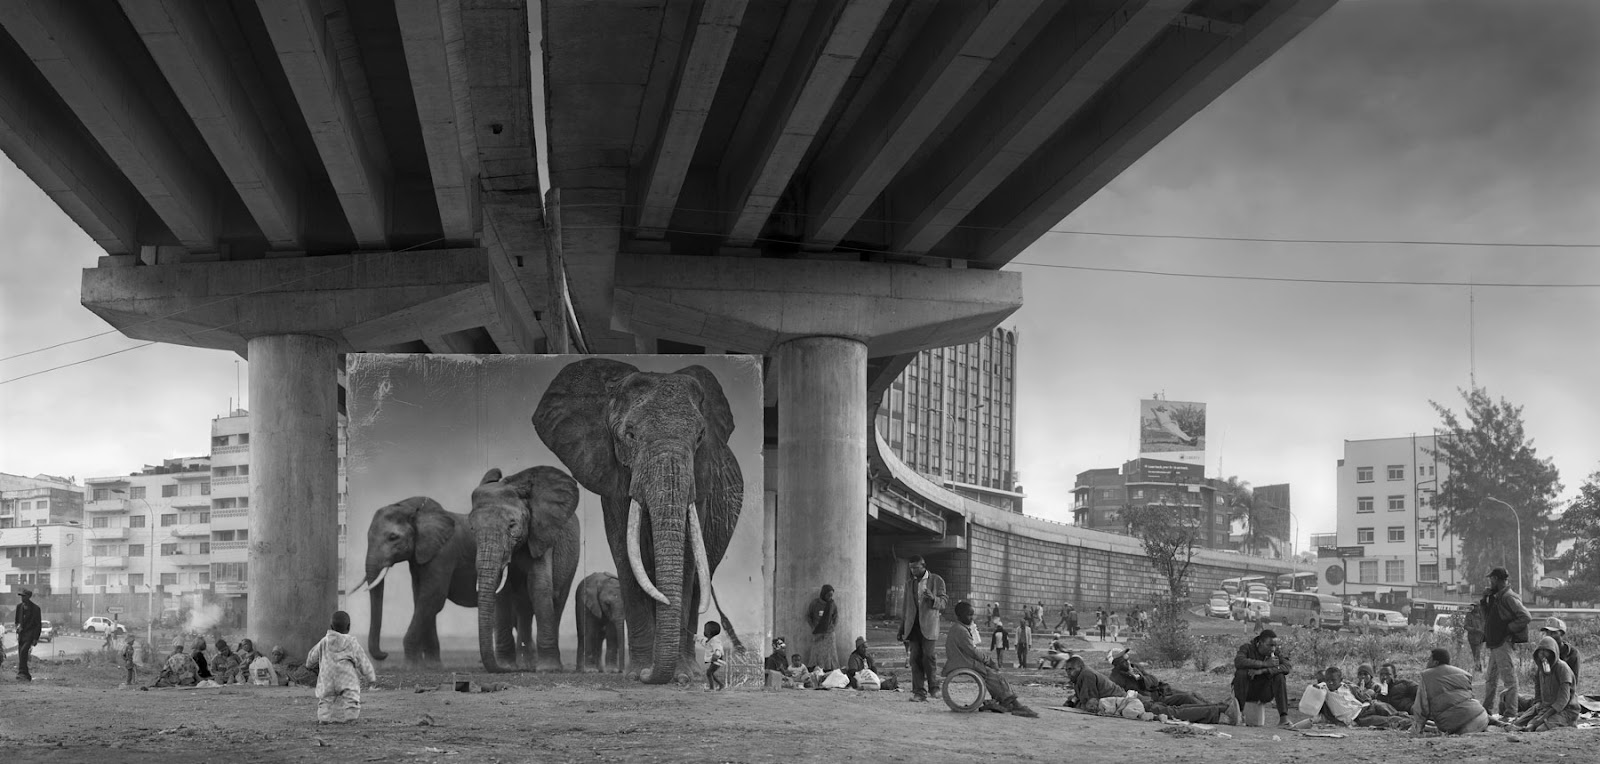 UNDERPASS-WITH-ELEPHANTS.jpg